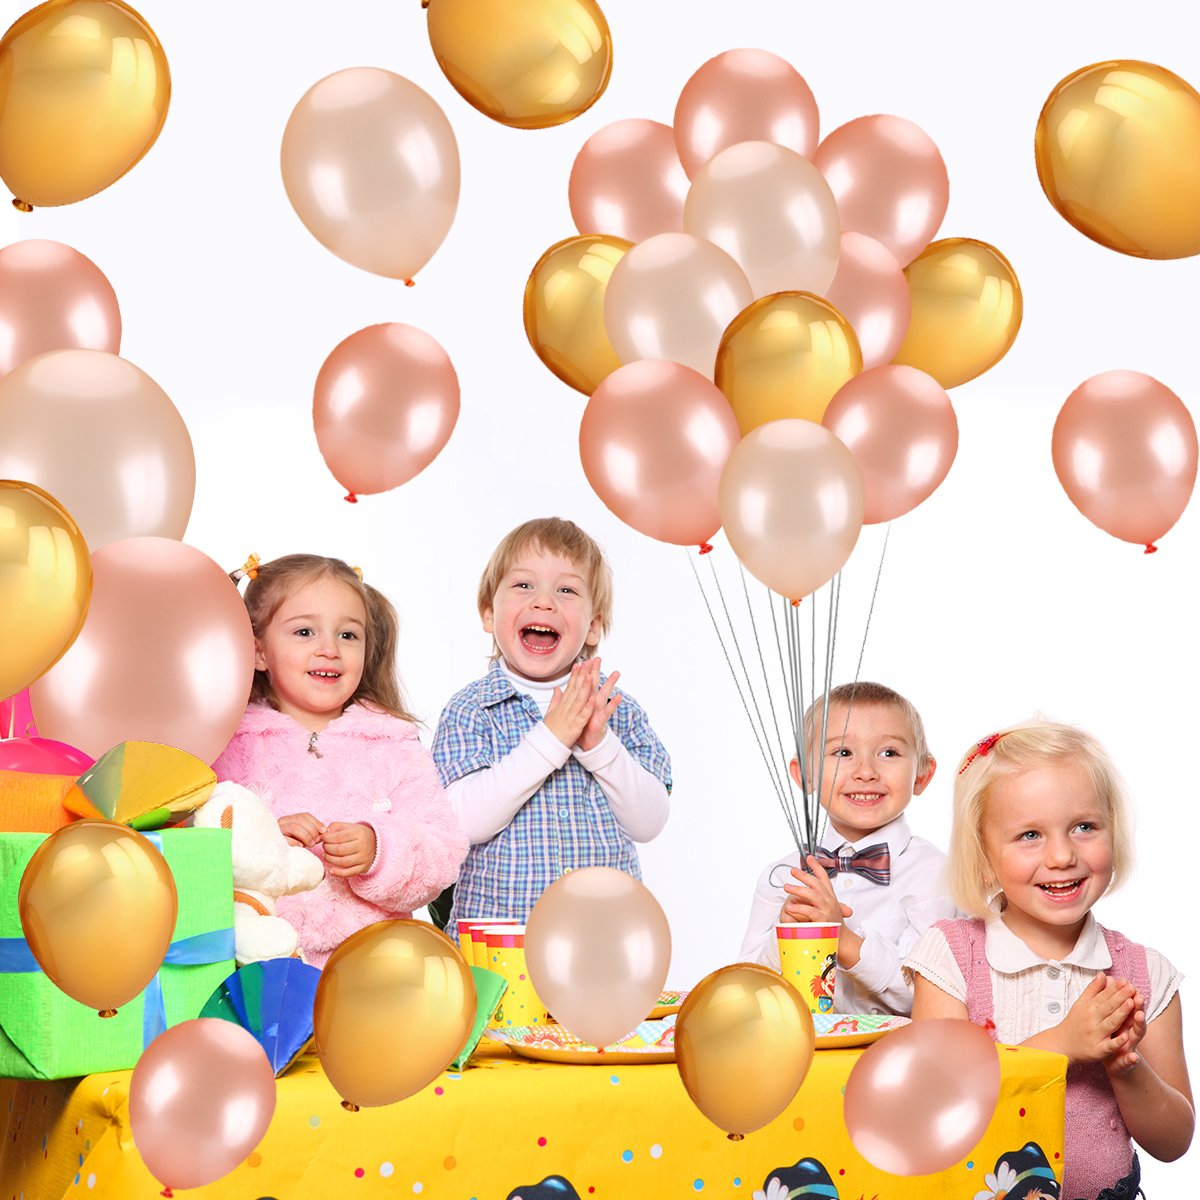 Wedding Hawaii Graduation Birthday Party Decoration Supplies LeeSky RGB-10 50Pcs Gold /& Rose Gold /& Champagne Gold Color Latex Party Balloons